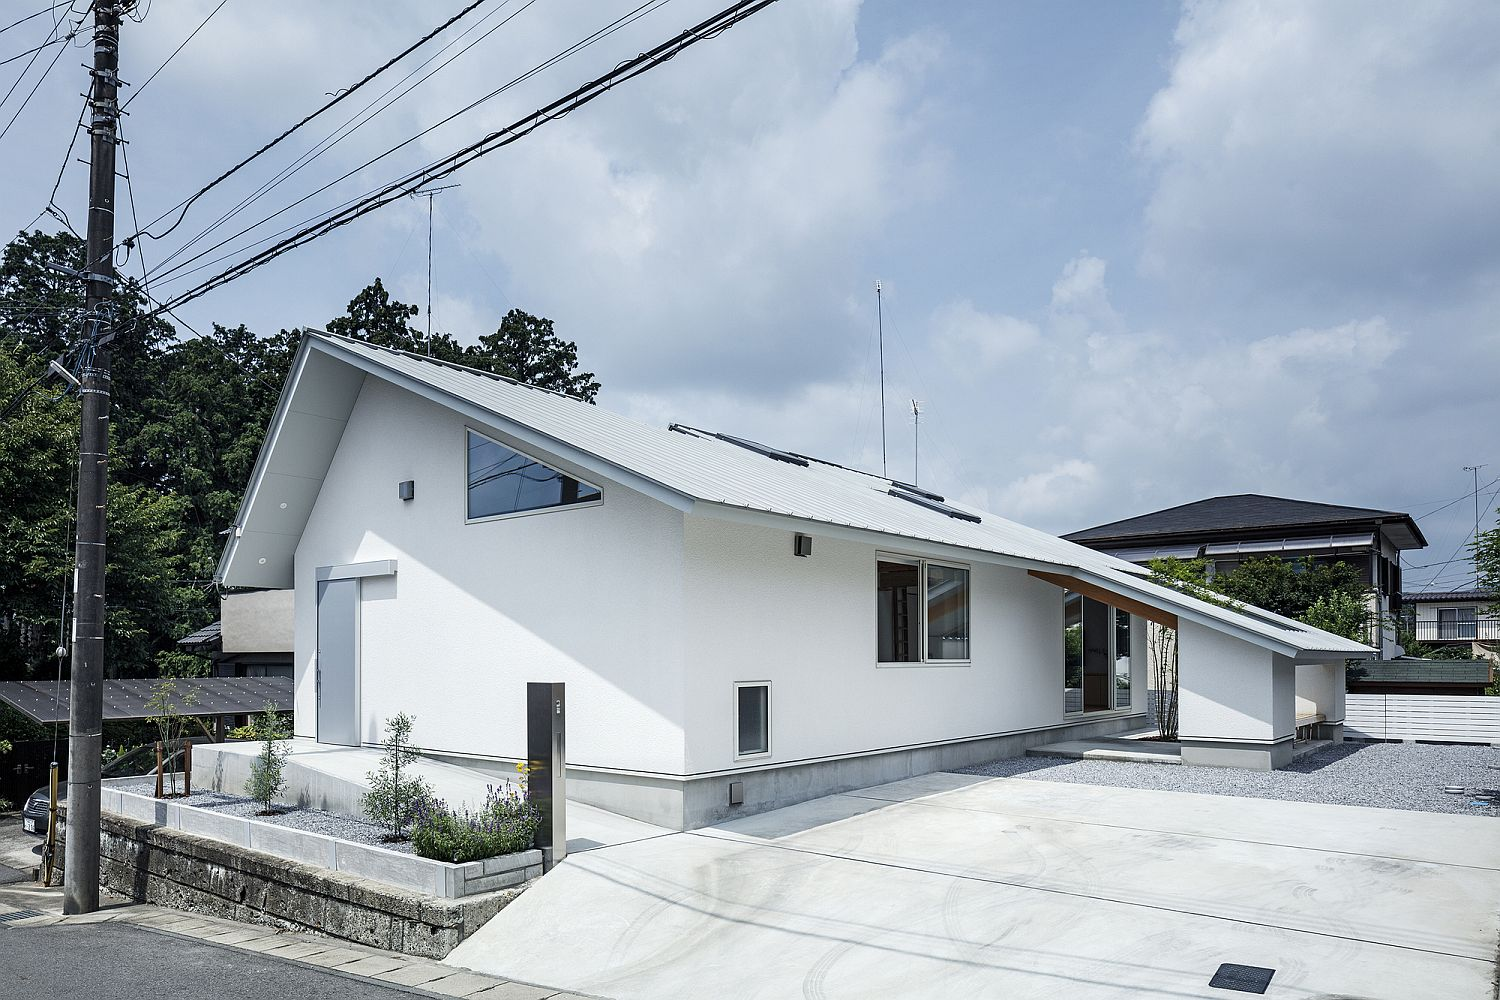 House D: Japanese Home with an Eccentric Gabled Roof and Unique Floor Plan